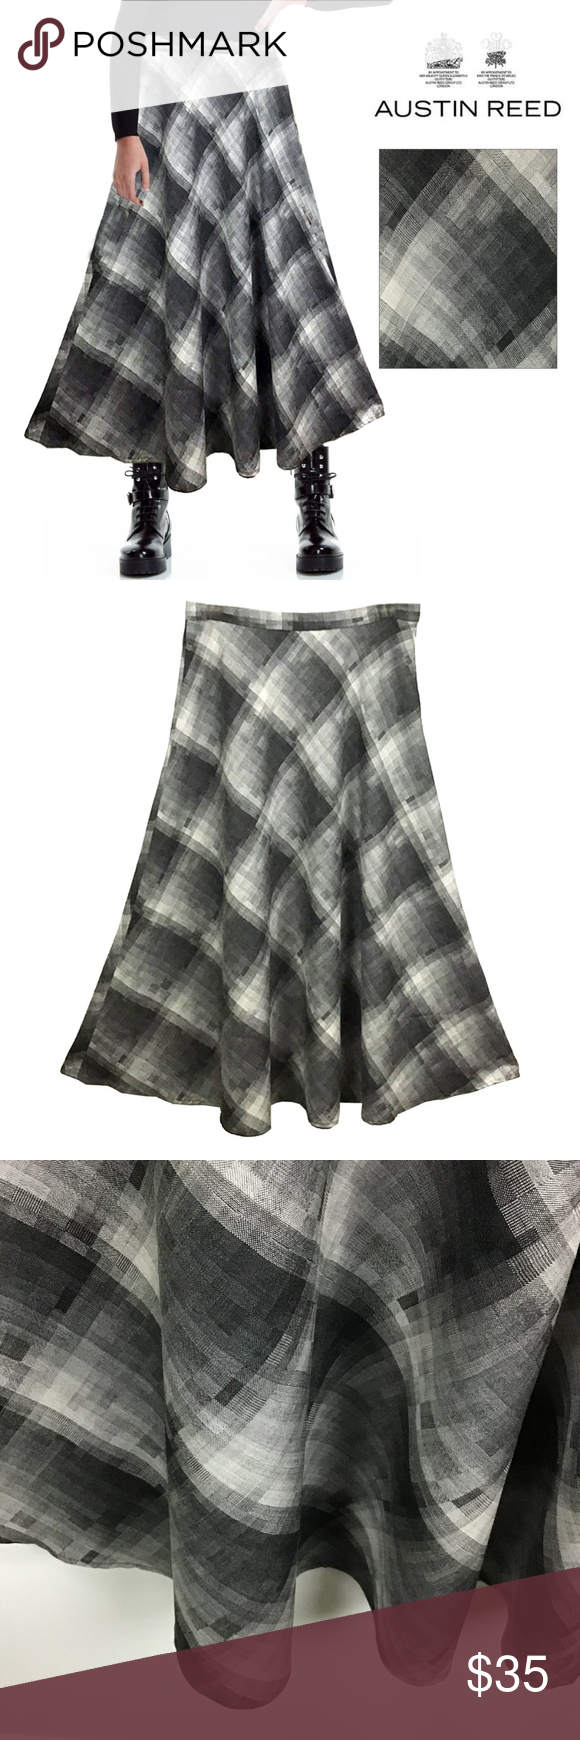 Hp Austin Reed Wool Blend Wt Blk Plaid Skirt Plaid Skirts Clothes Design Wool Blend